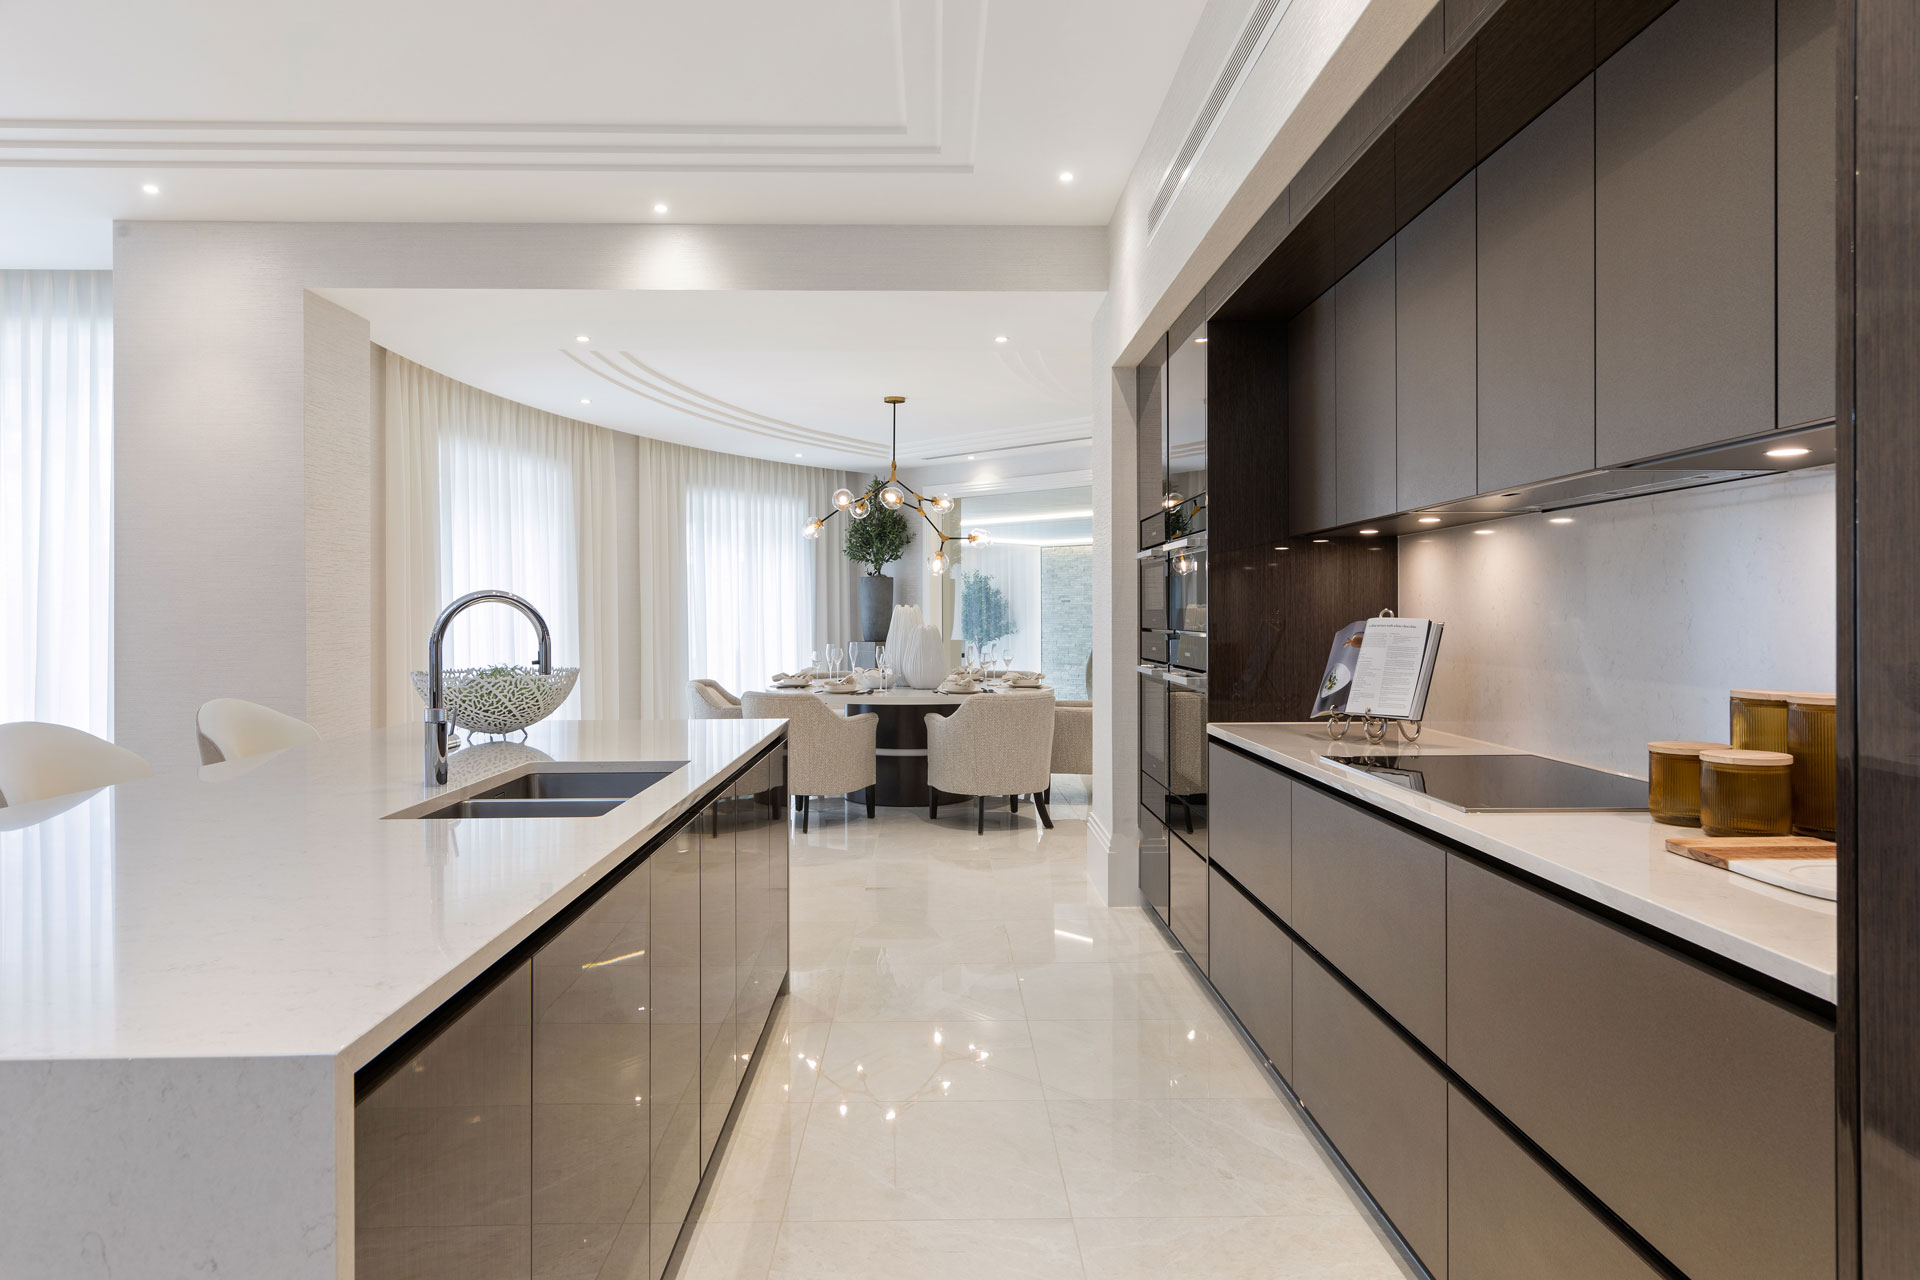 Kitchen and dining area in mansion home